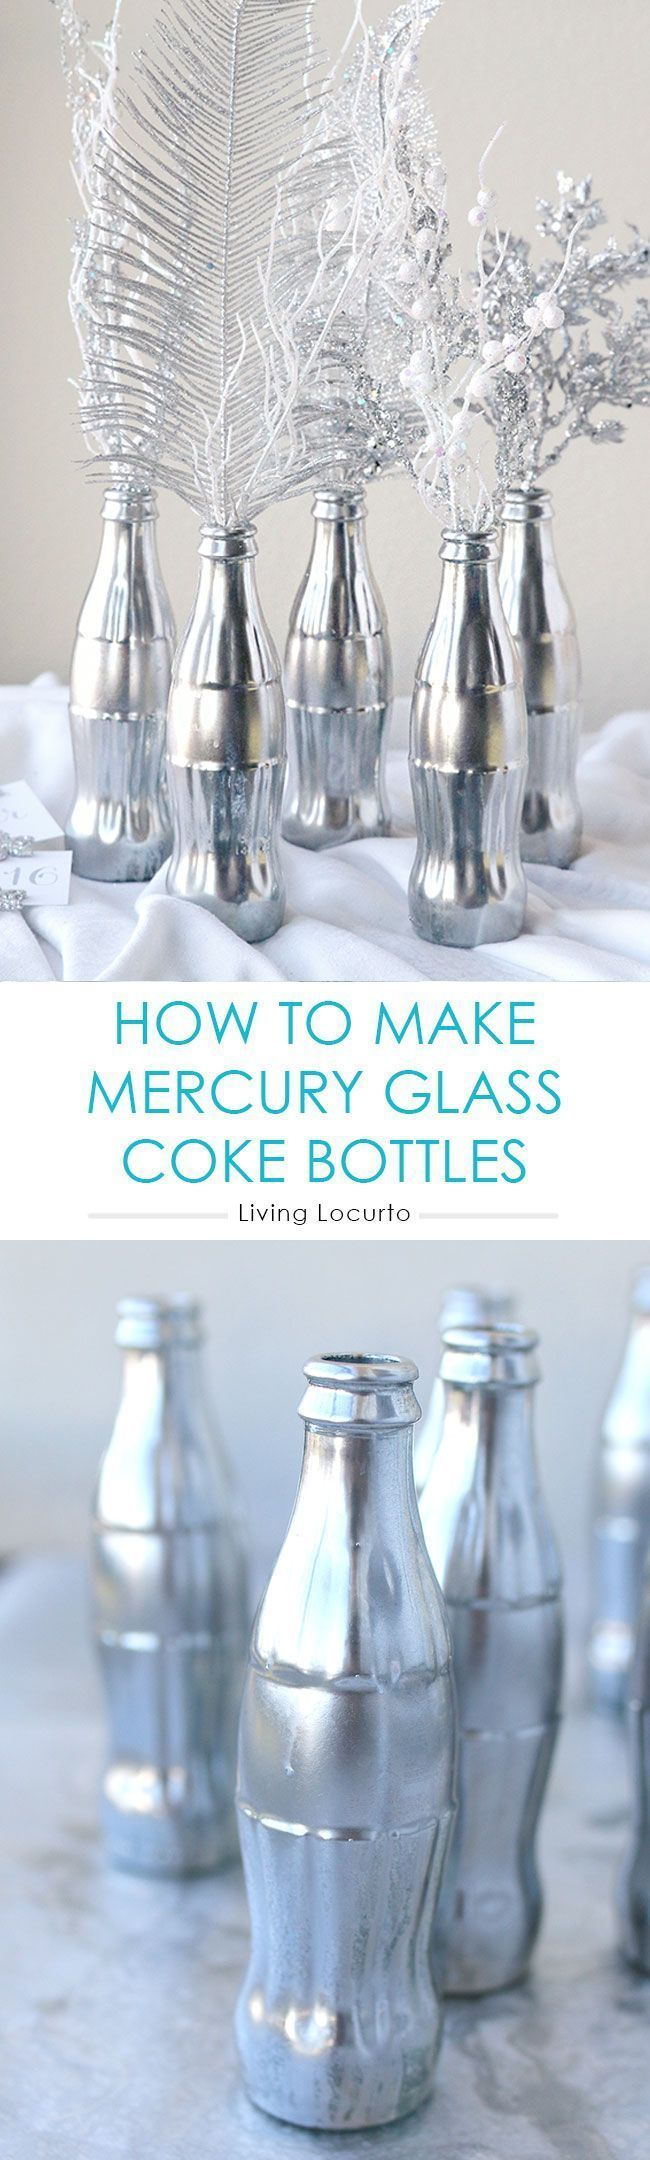 How to Make a Mercury Glass Coke Bottles. Easy DIY Craft Idea for Coca-Cola bottles. These would be great as a holiday centerpiece in your home! Silver home decor ideas.